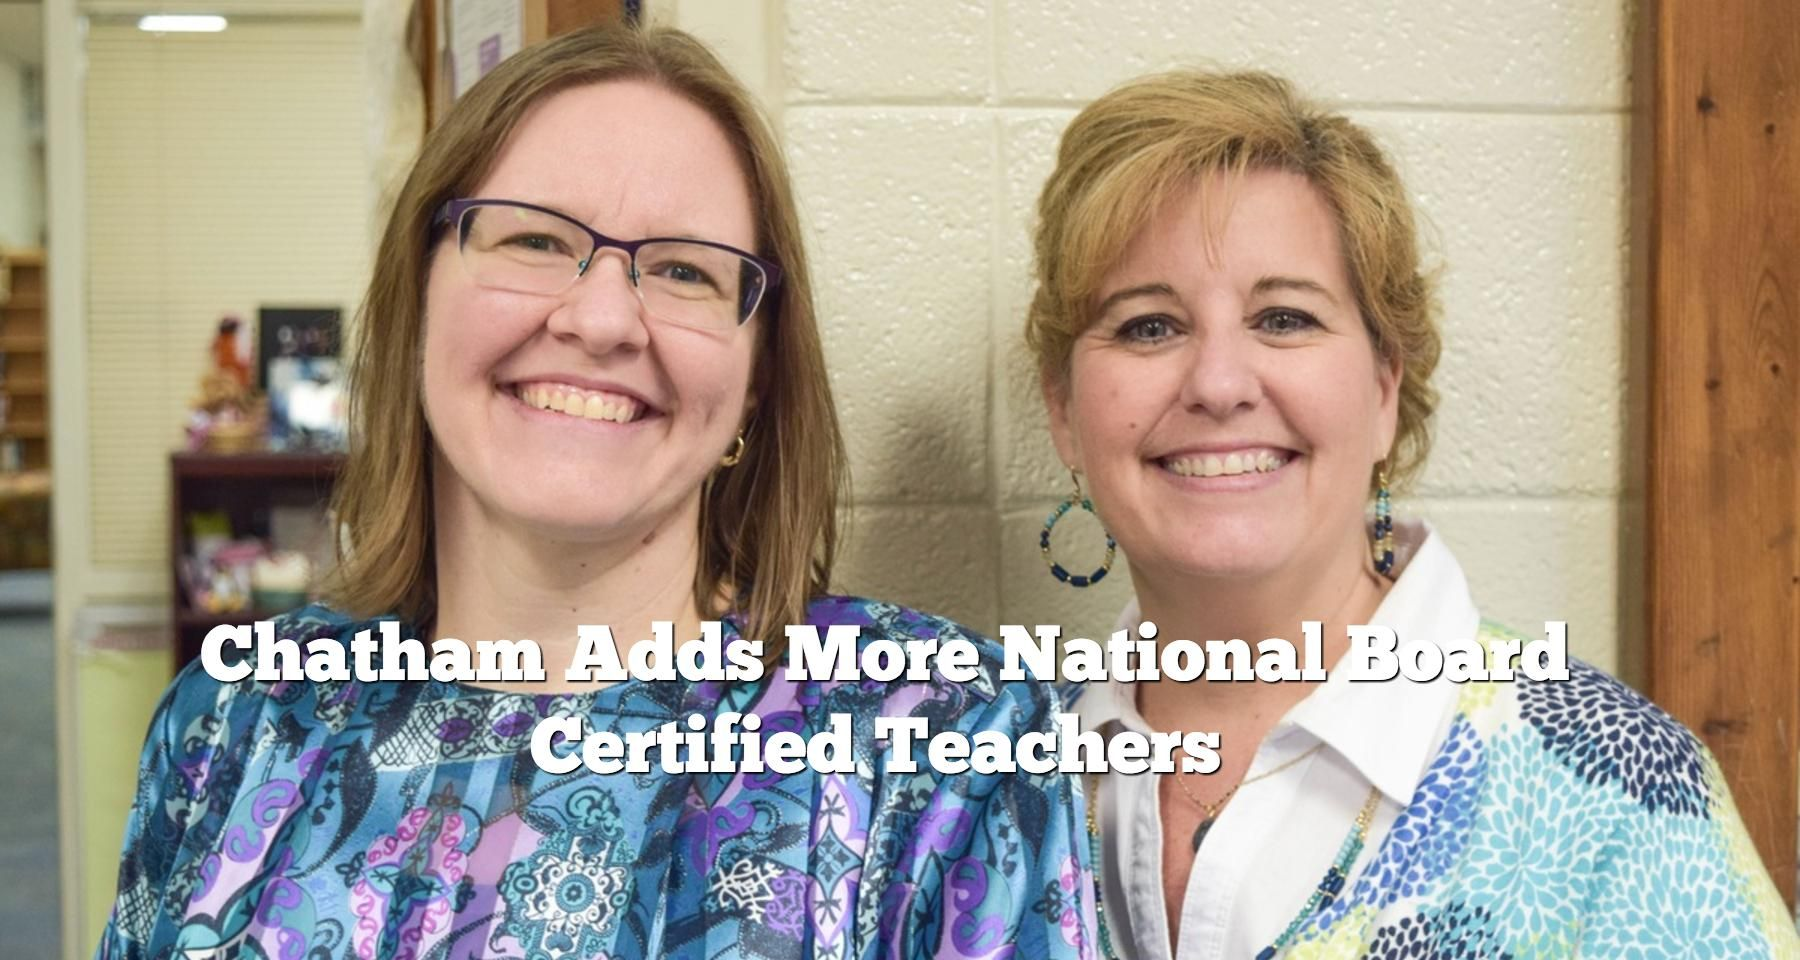 Chatham Adds More Nationally Board Certified Teachers